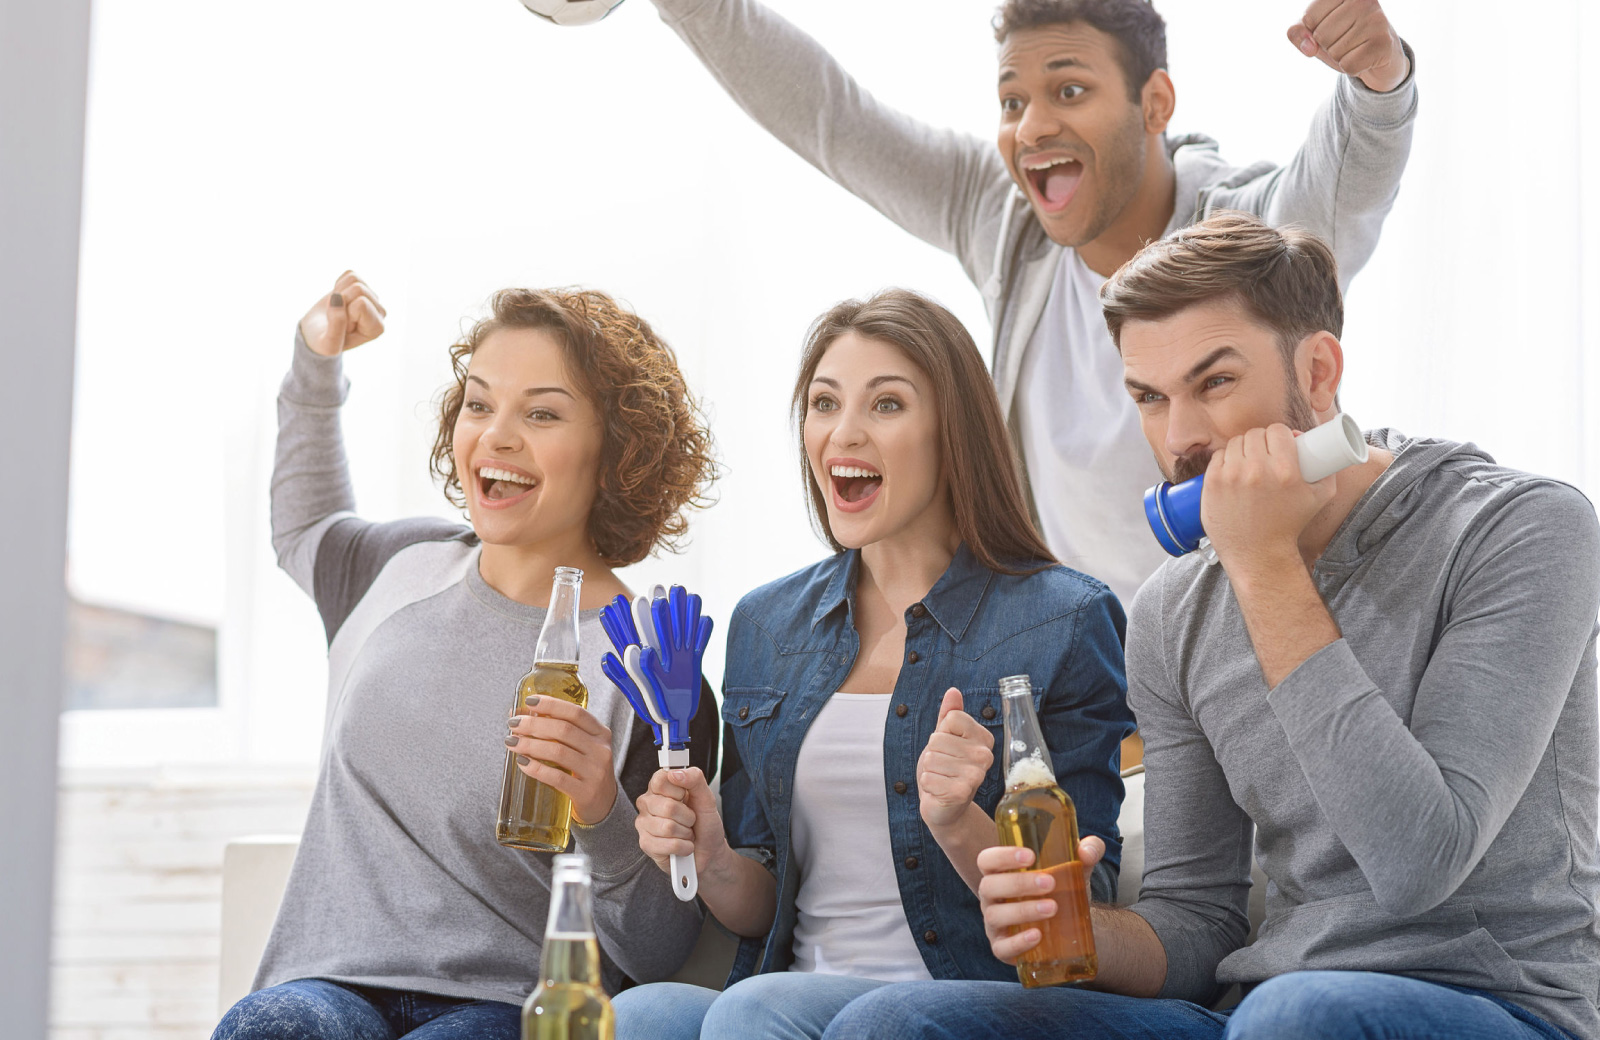 2 guys & 2 girls watching super bowl on tv excitedly - Hyde Square Apts